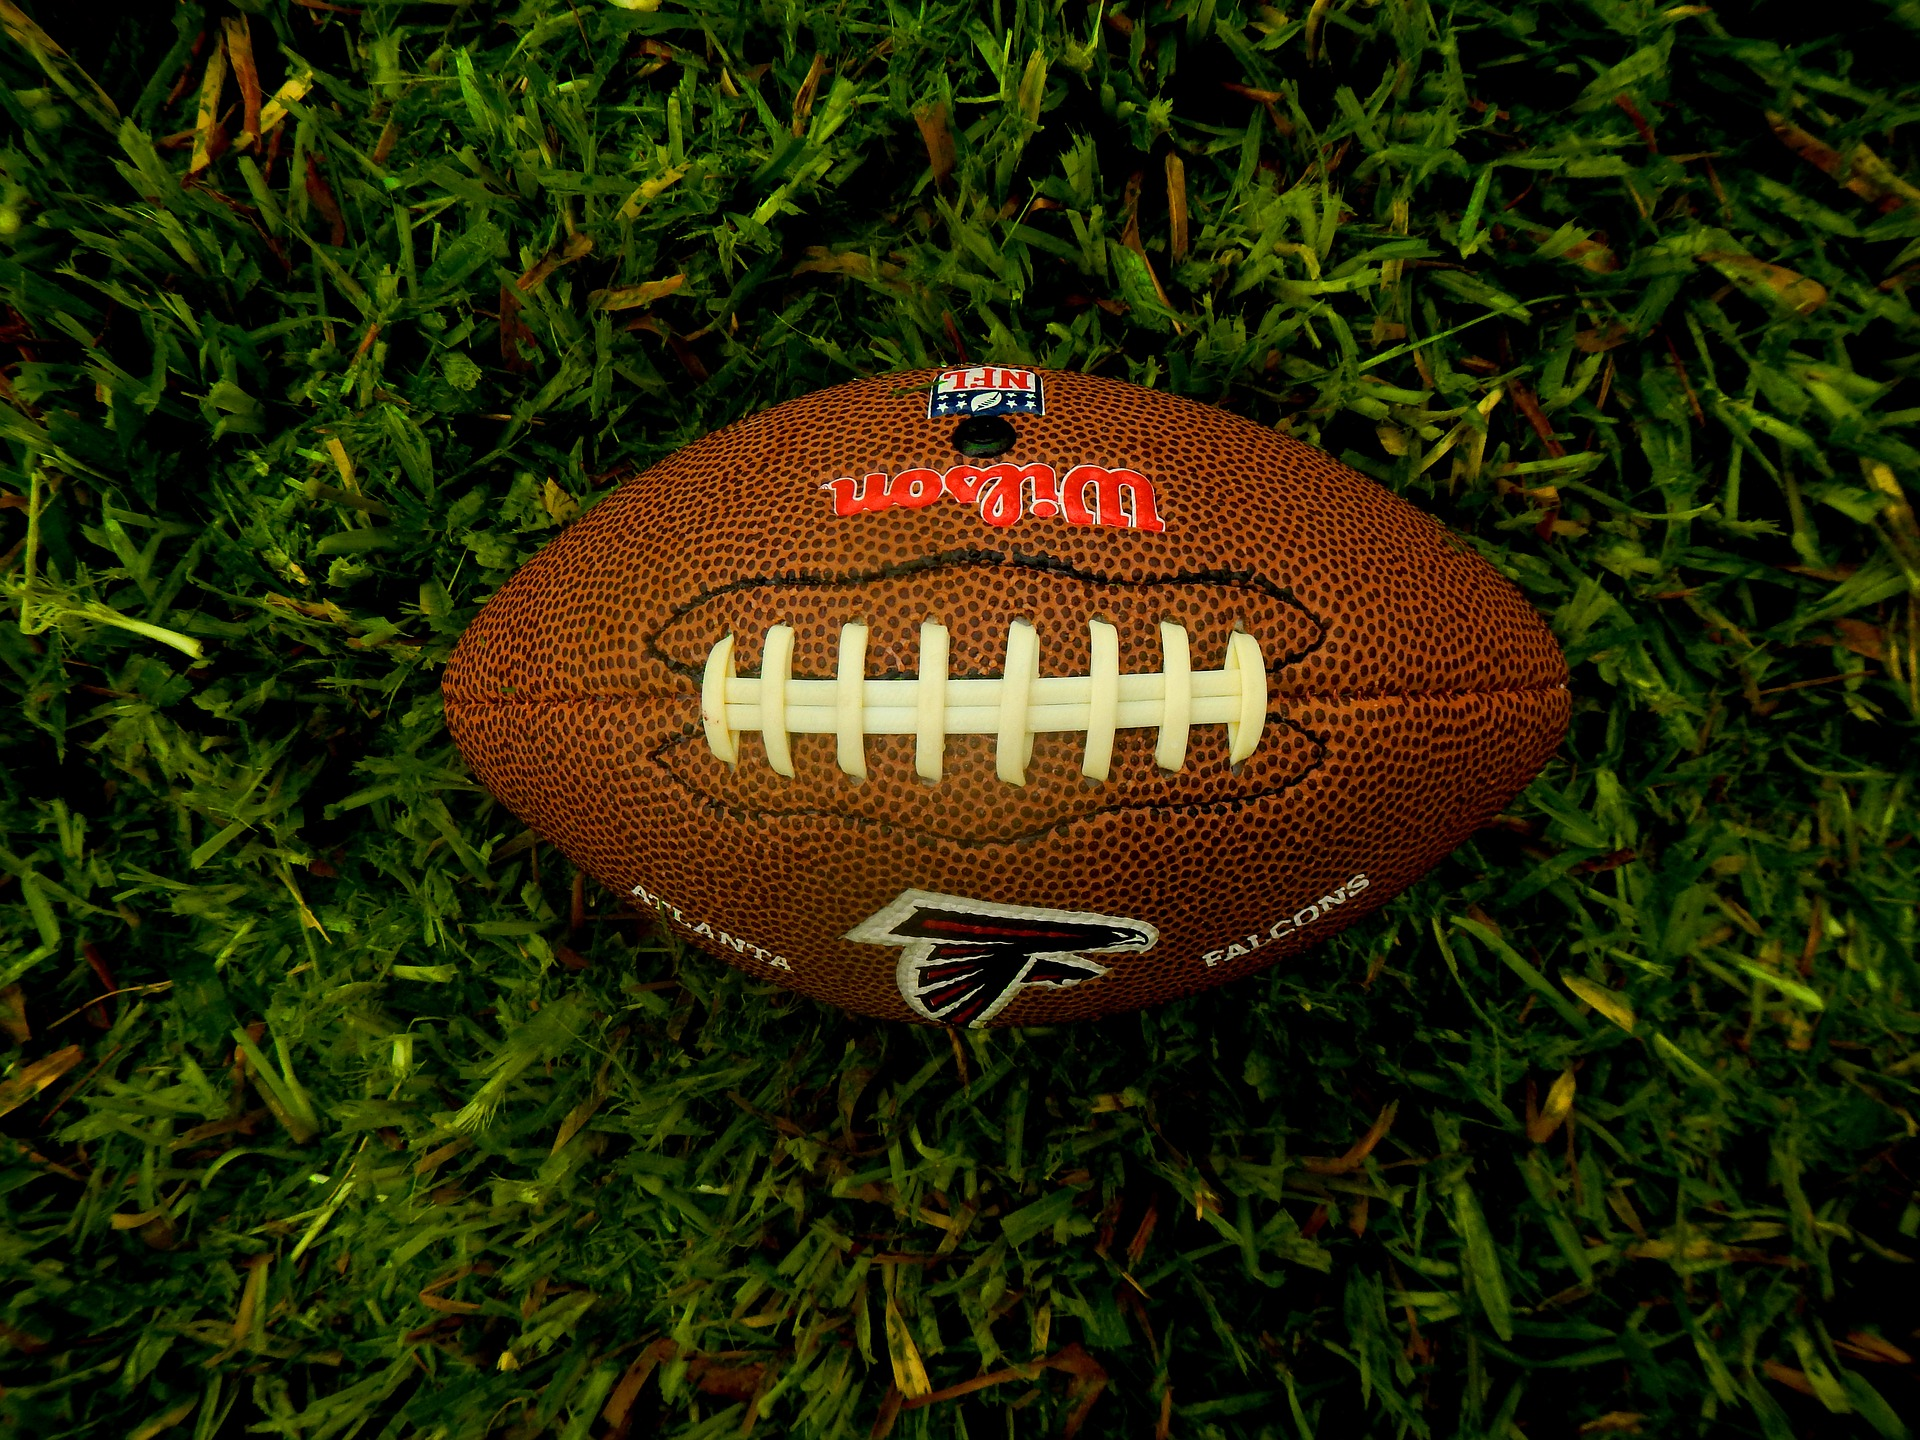 A football on turf.